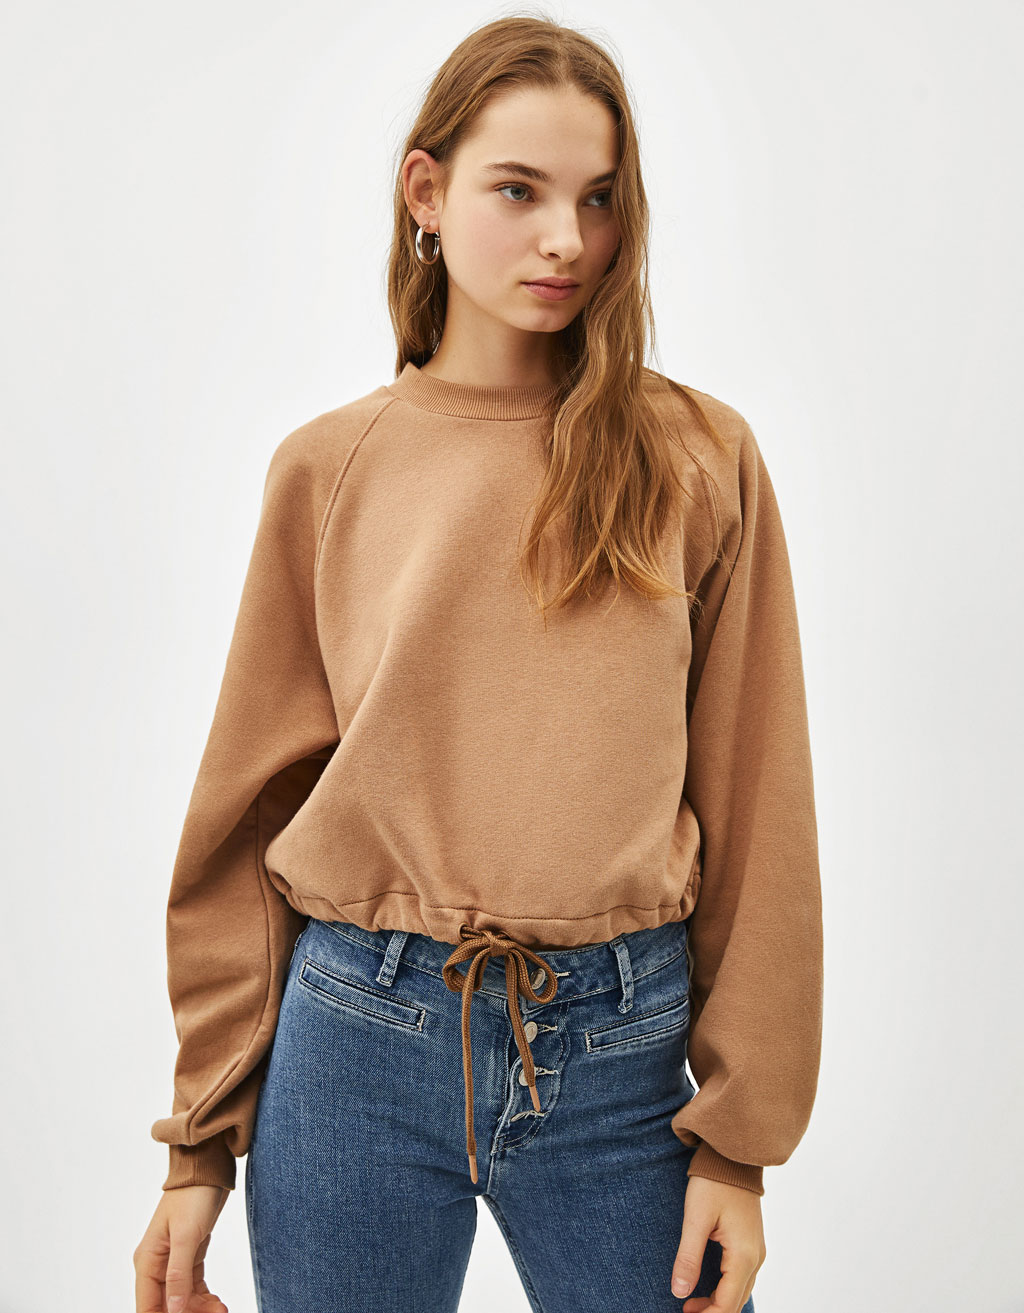 Gathered sweatshirt